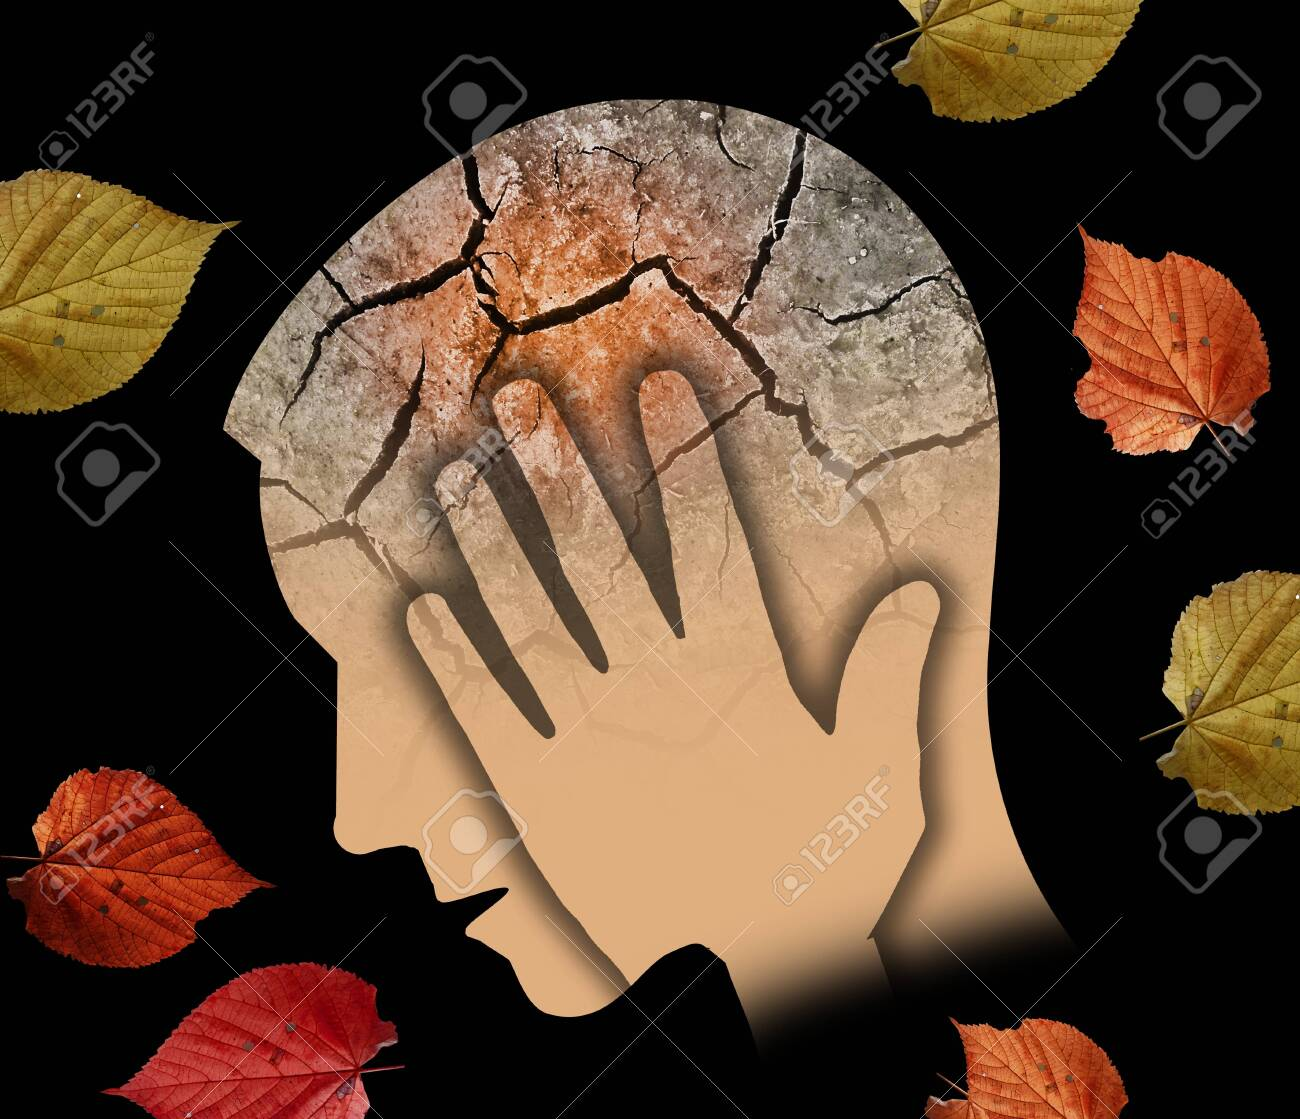 Autumn sadness and depression, young man. Stylized Male Head Silhouette Holding His Head.Photo-montage with Dry Cracked Earth and Autumn Leaves Symbolizing Depression. - 131422096